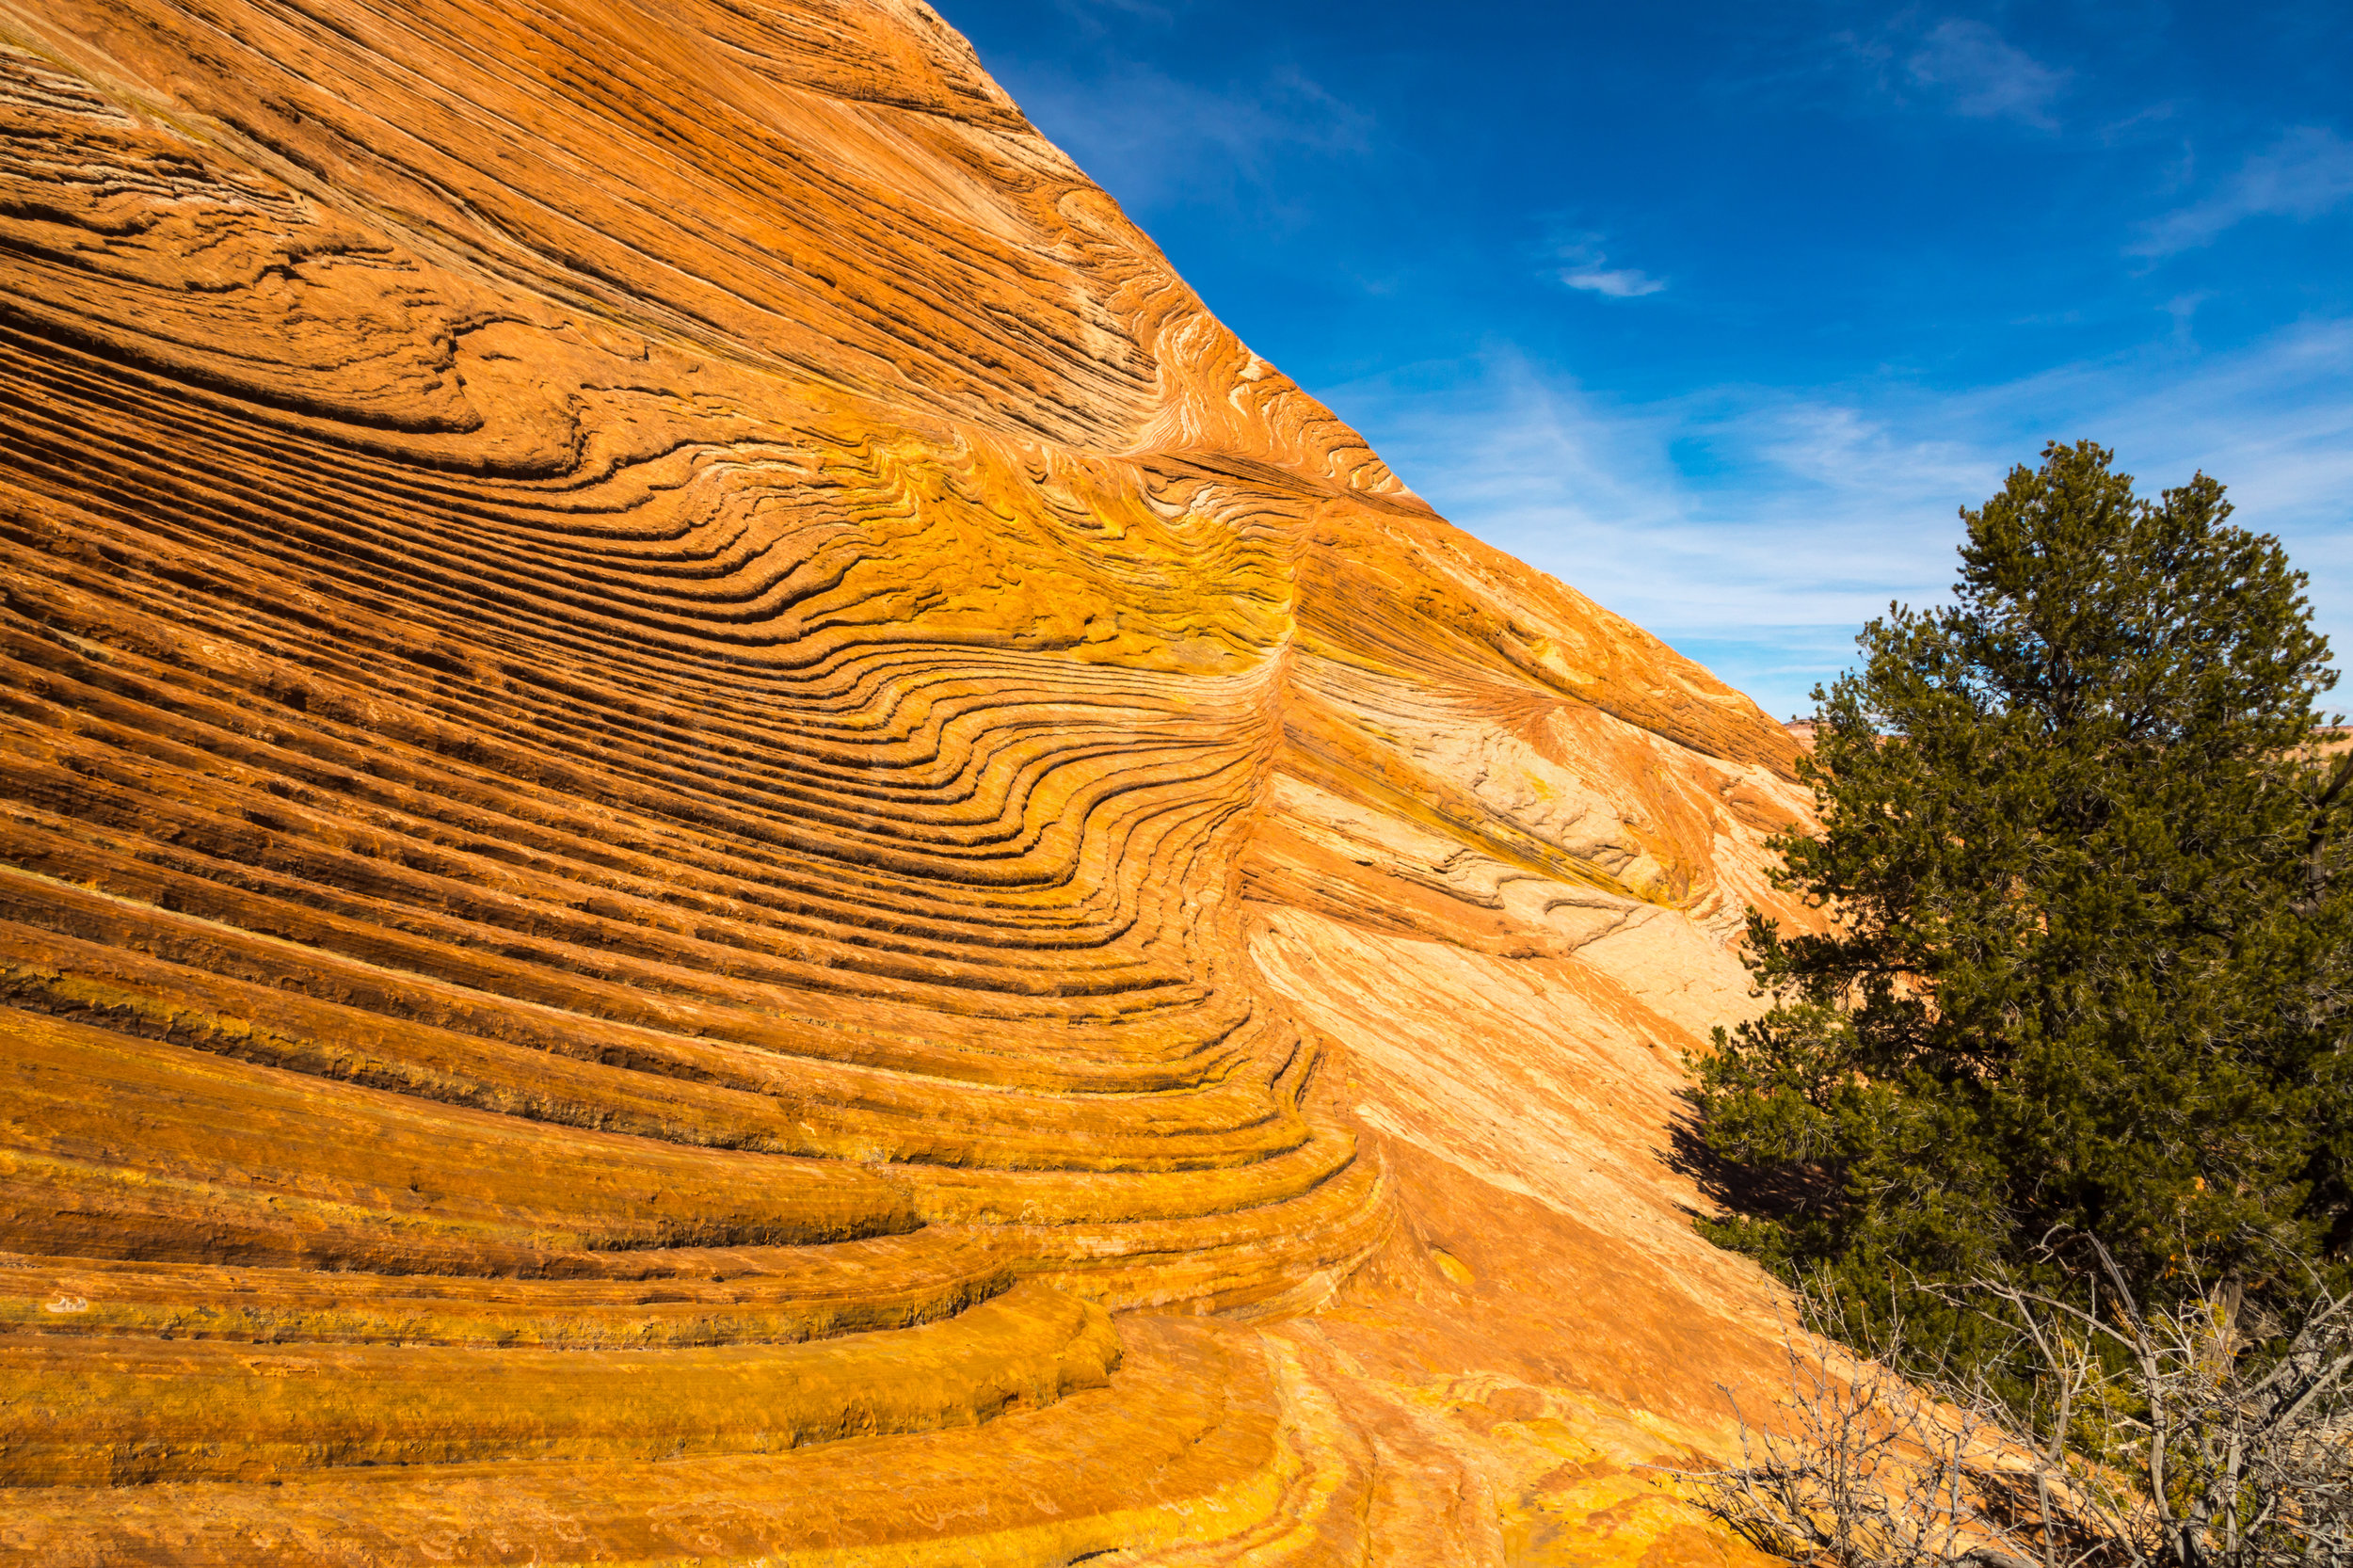 Escalante National Monument, Image # 6562